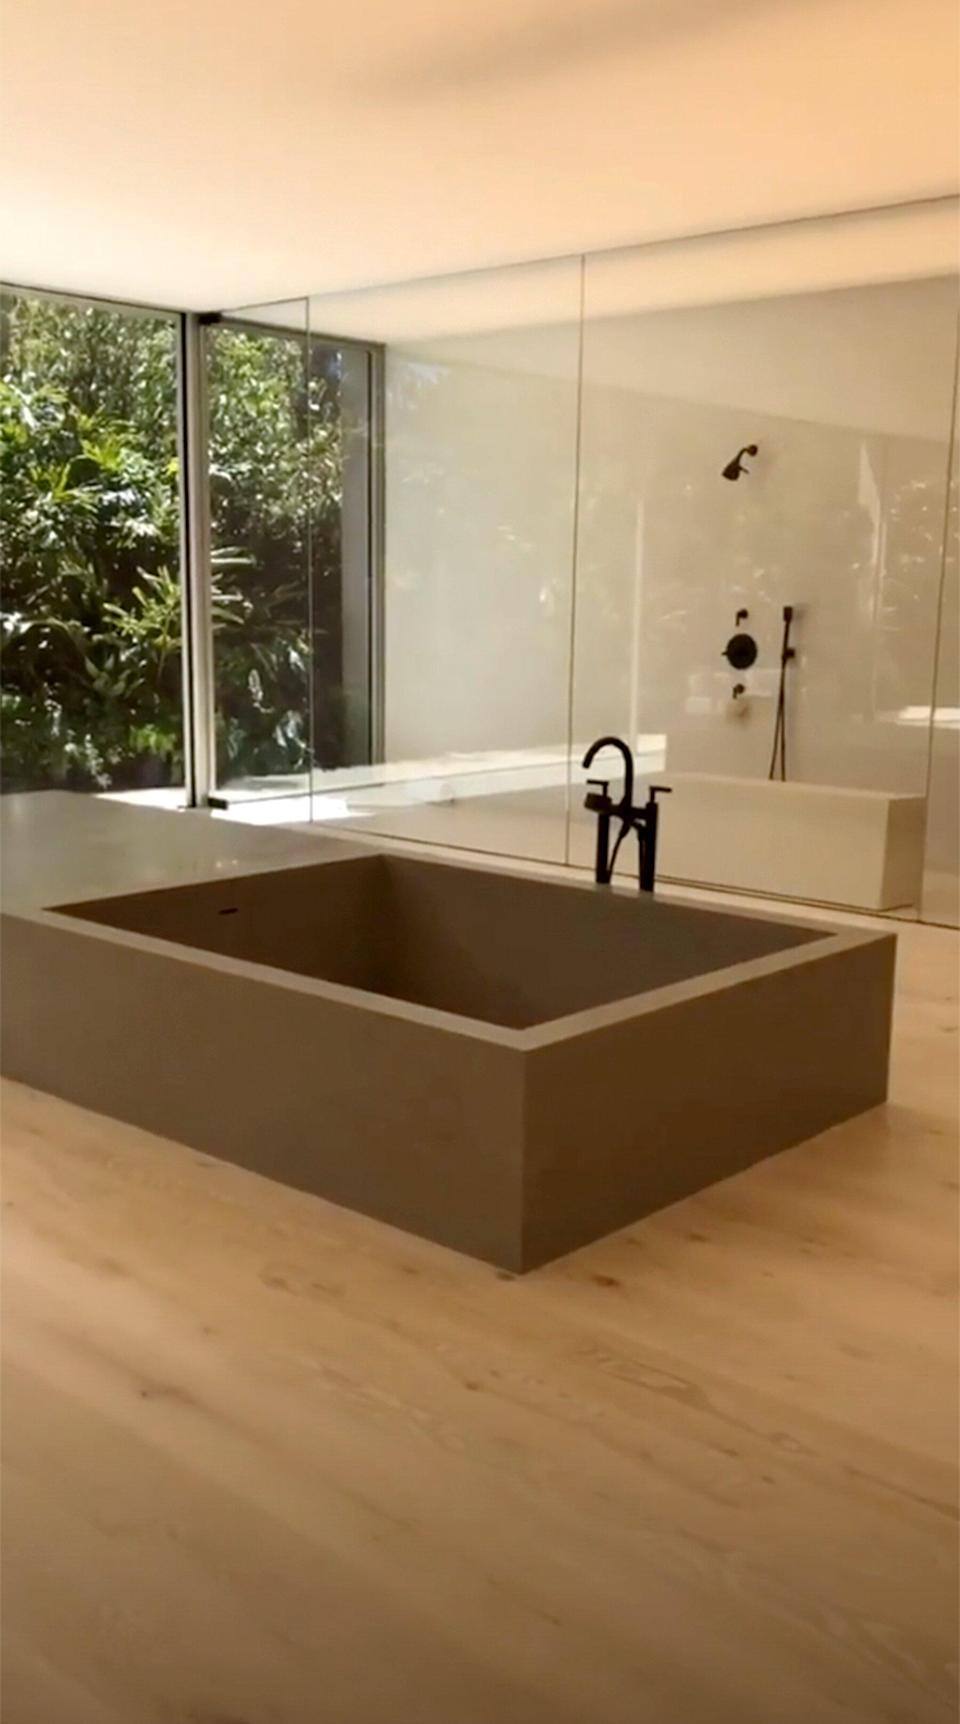 In case you wanted a better view of the rather uncomfortable-looking tub.